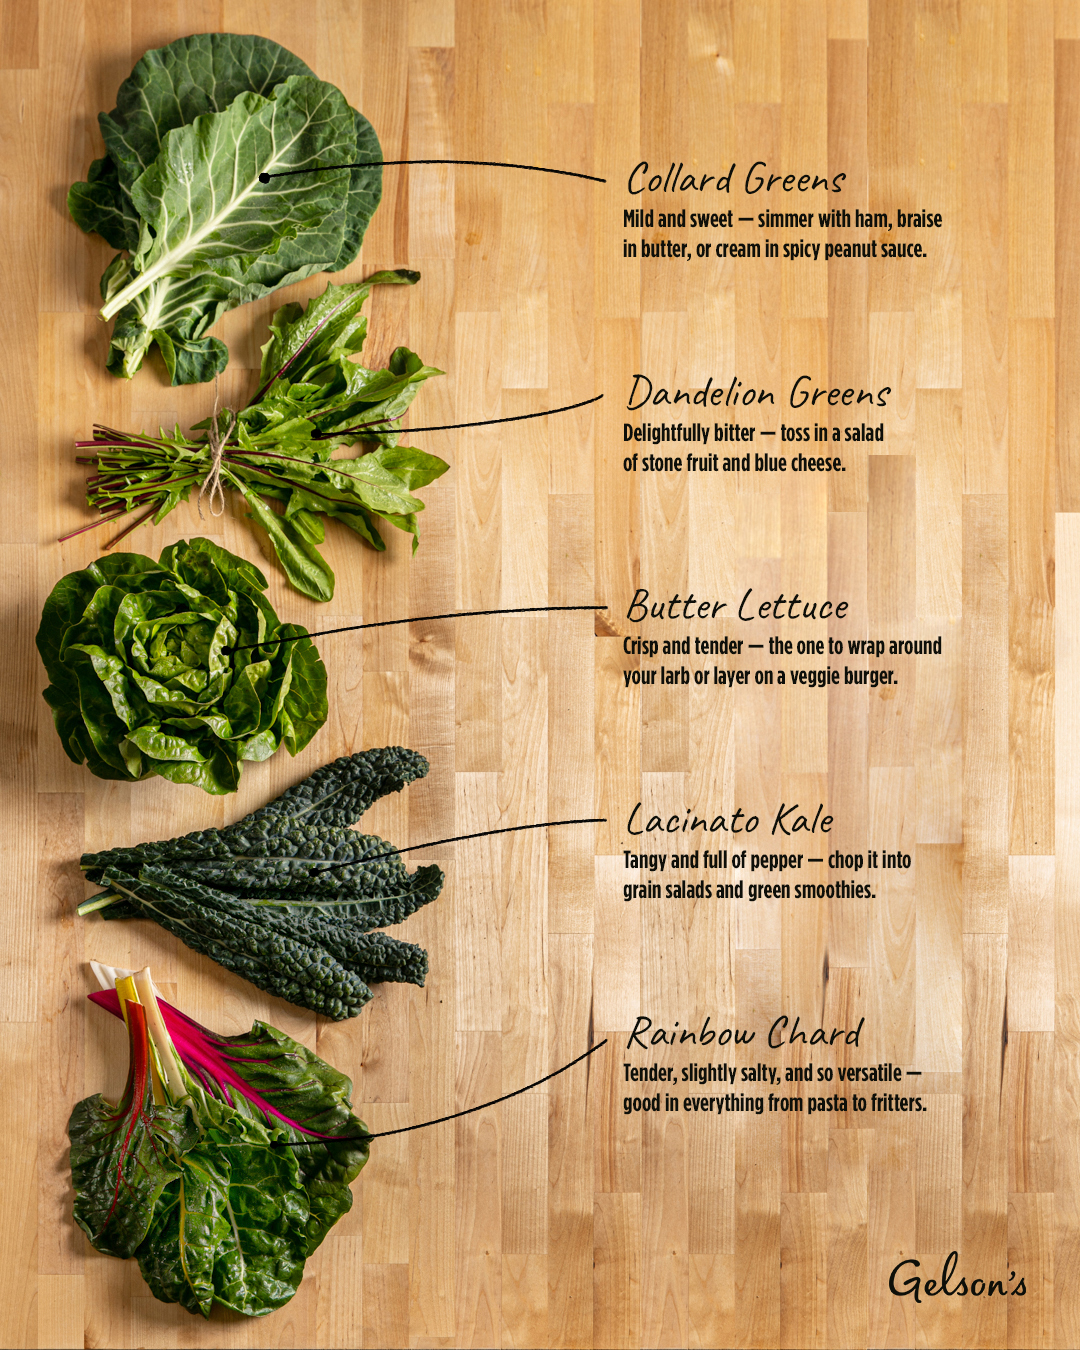 Home Cook's Guide to Greens